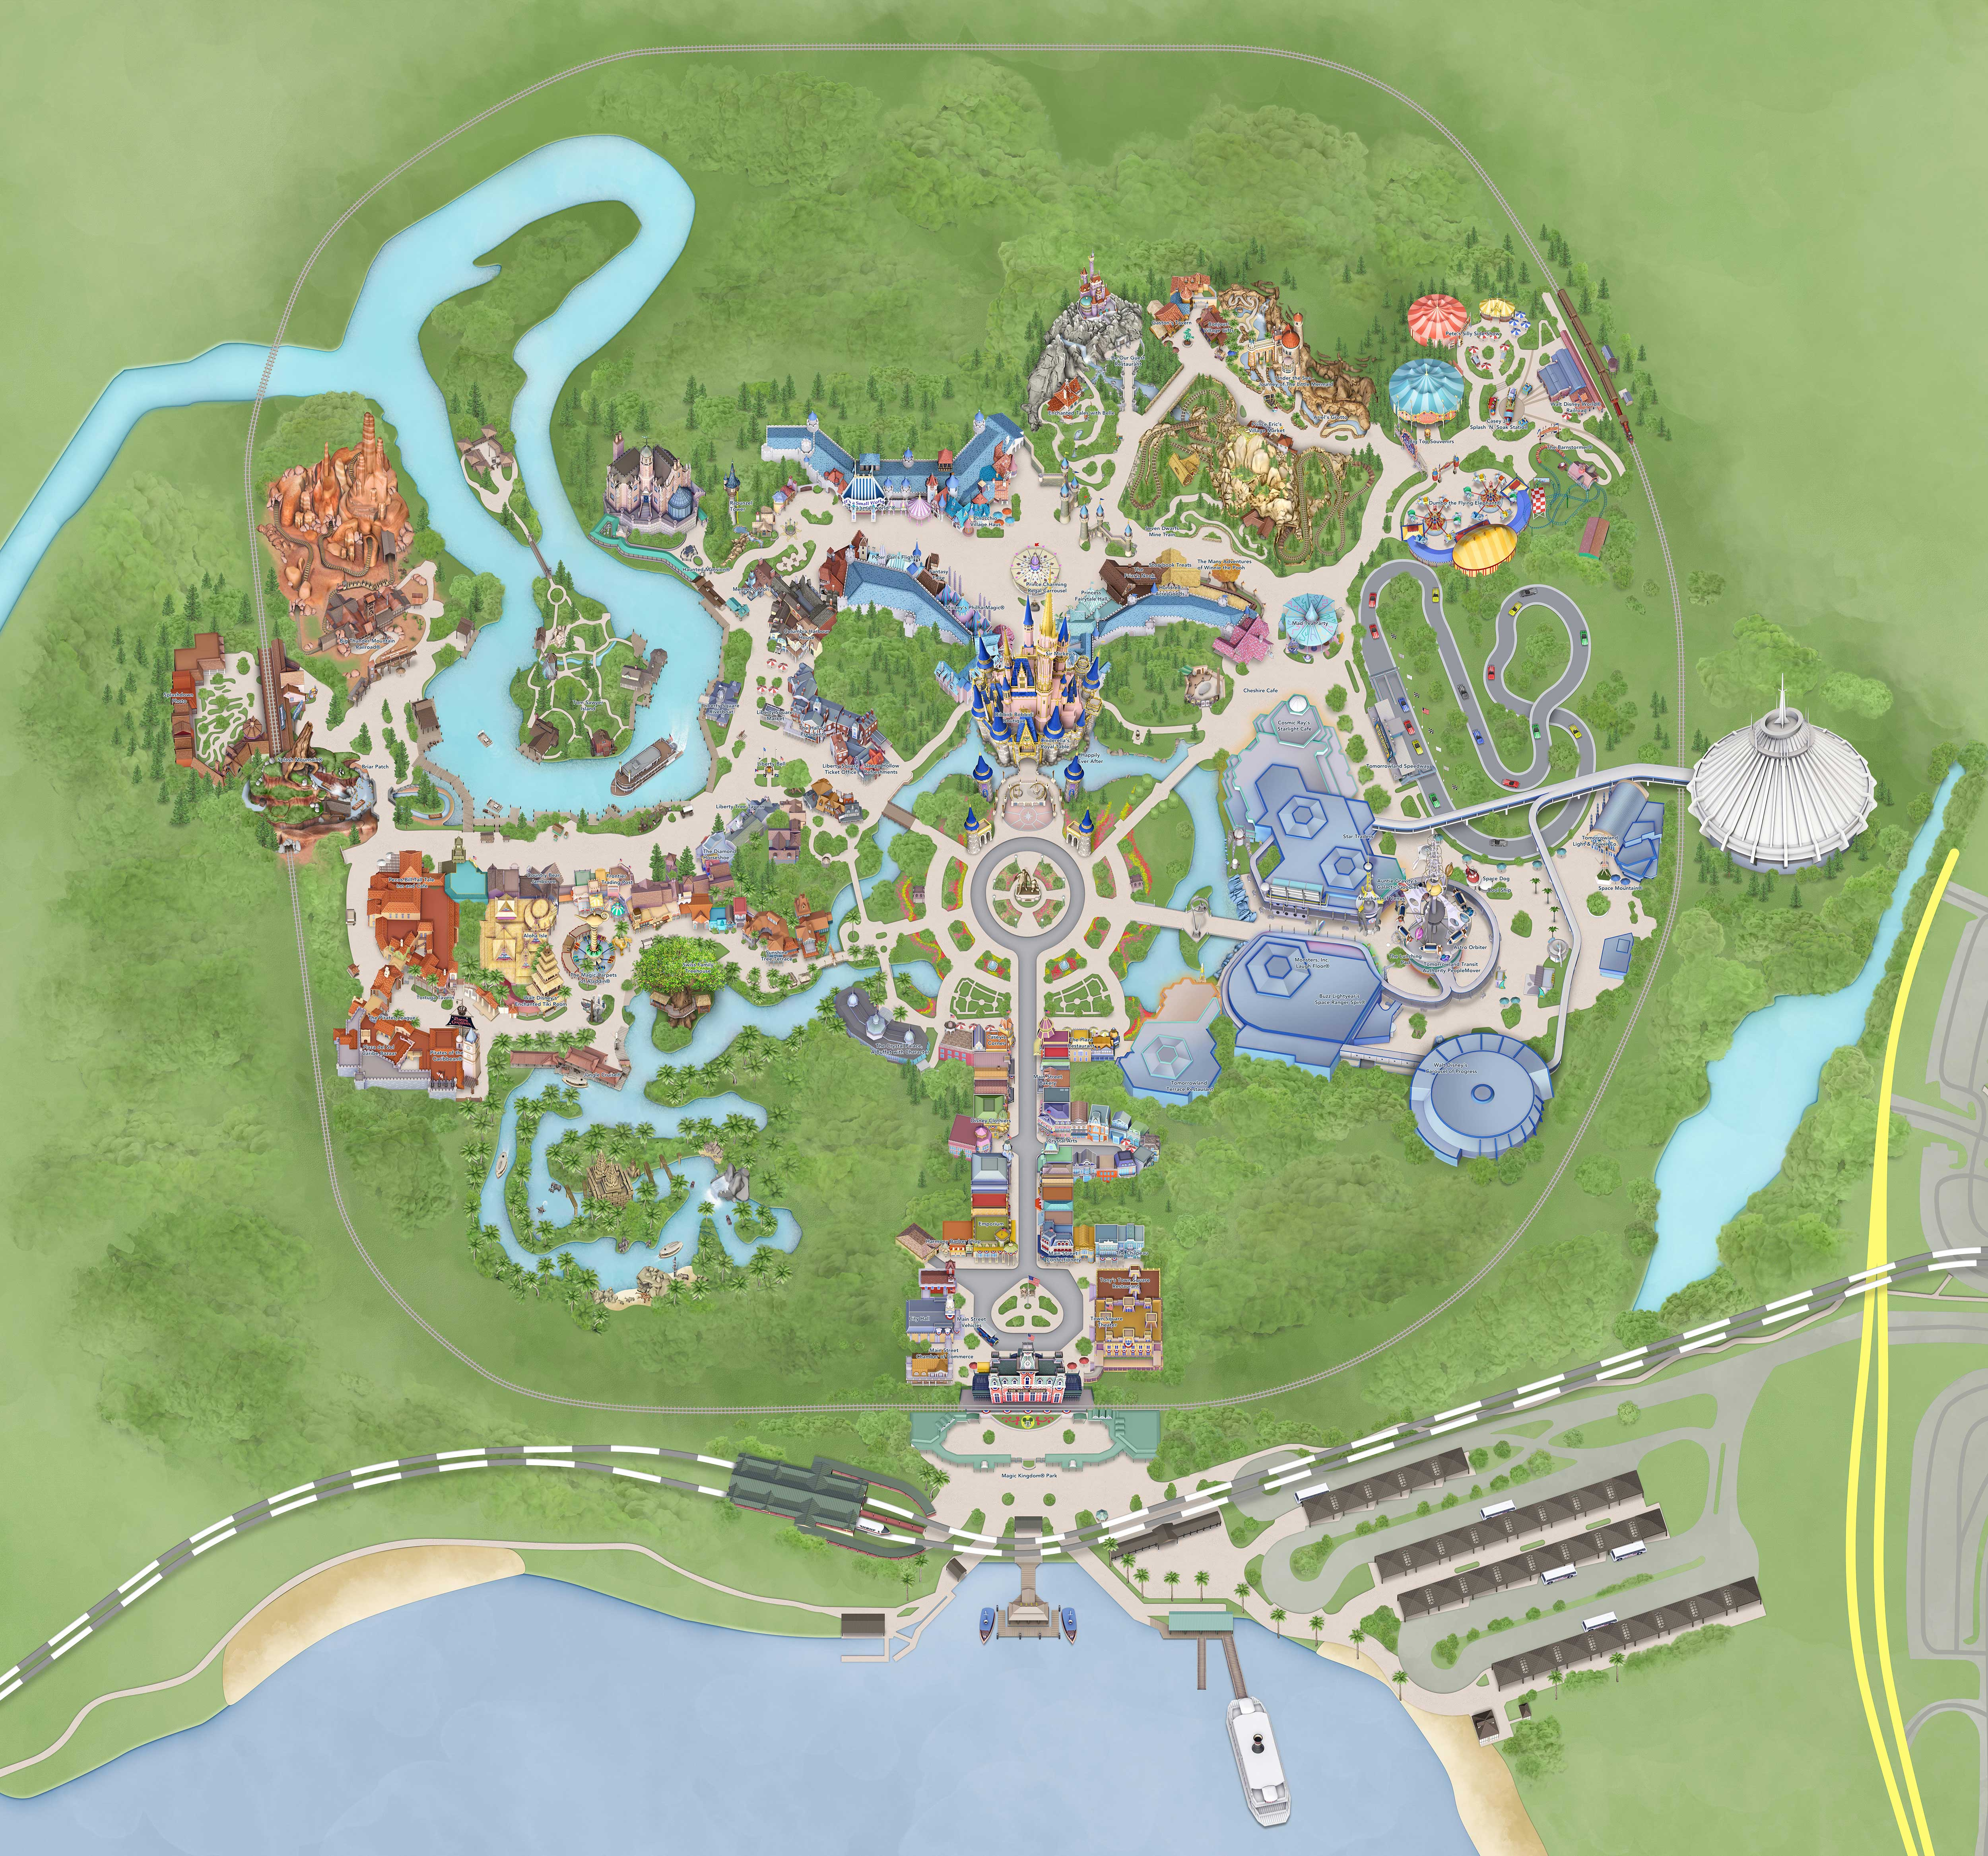 My Disney Experience map update - new look Cinderella Castle and path to Grand Floridian